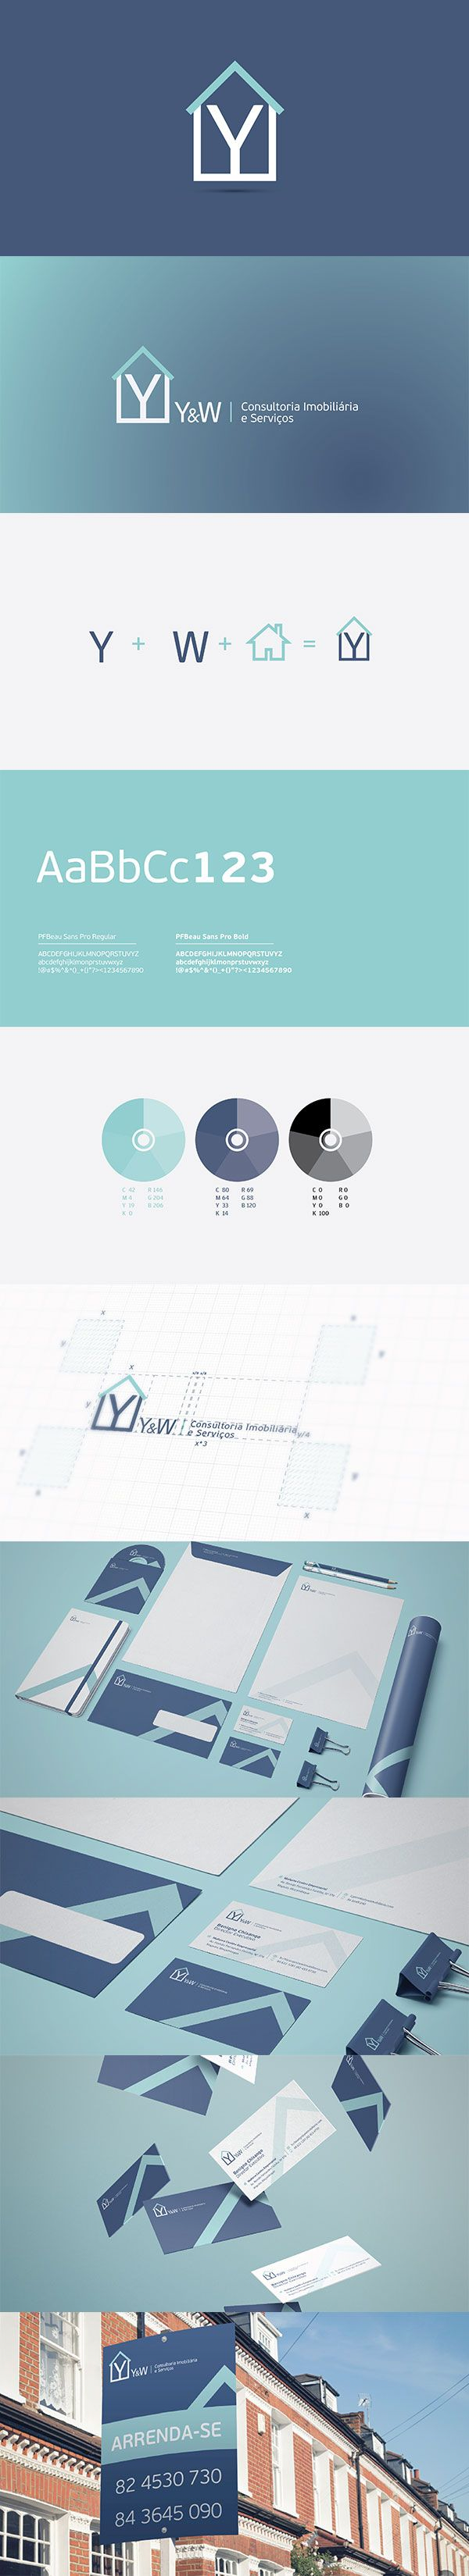 Y&W is a small real estate firm based in Maputo - Mozambique. This project started back in 2010 when the final logo proposal was approved. Since the company wasn't in time very active they didn't feel the nor had the budget to develop the rest of the elements. Now, four years later they have started growing their business and decided to develop the full corporate identity. This is the final outcome of the branding exercise.   Envoy!